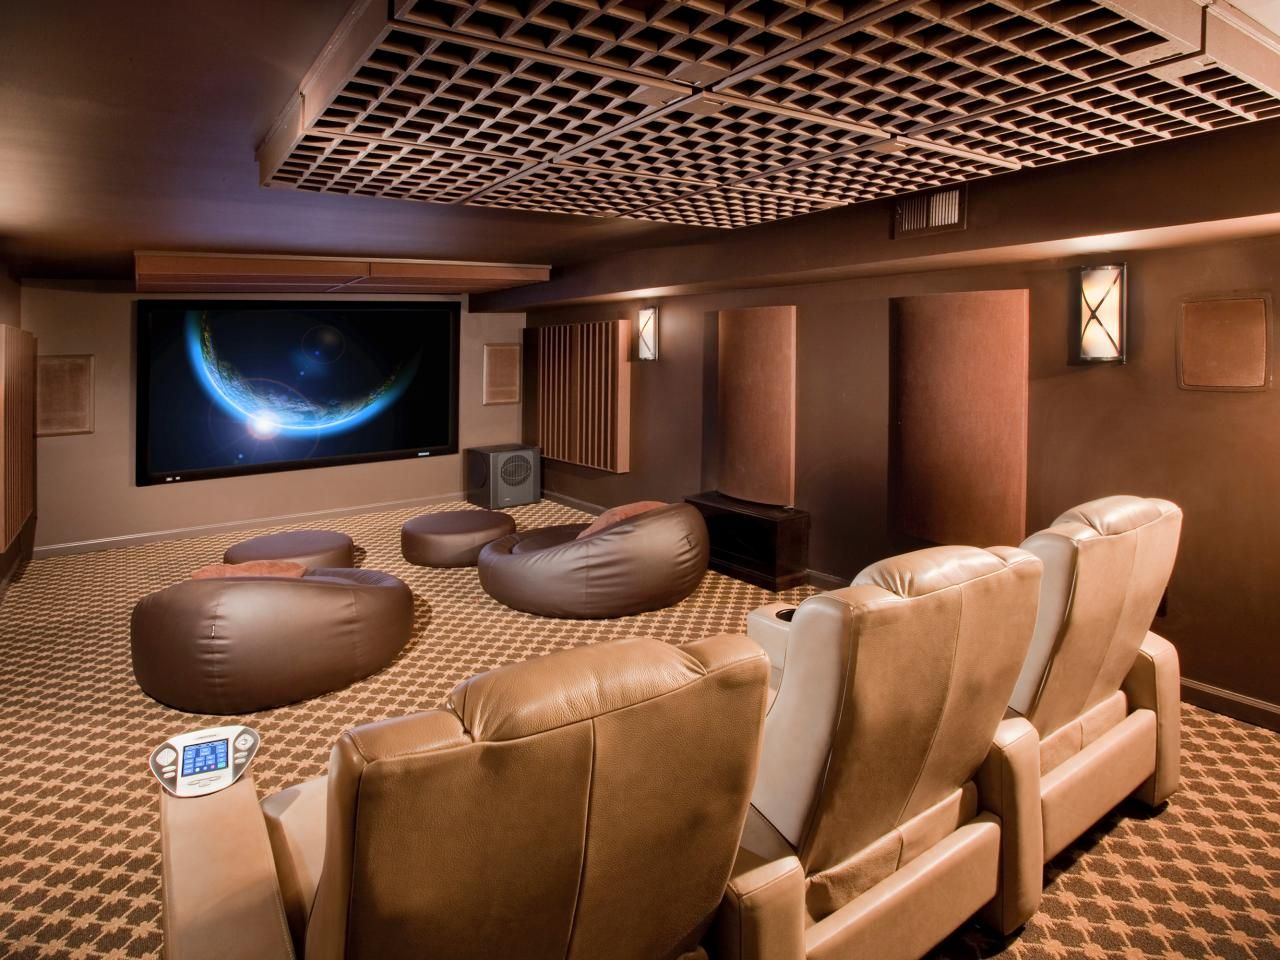 Get All The Info You Ll Need On Media Room Furniture And Accessories And Get Ready To Design A Comf Home Theater Rooms Home Theater Seating Media Room Seating